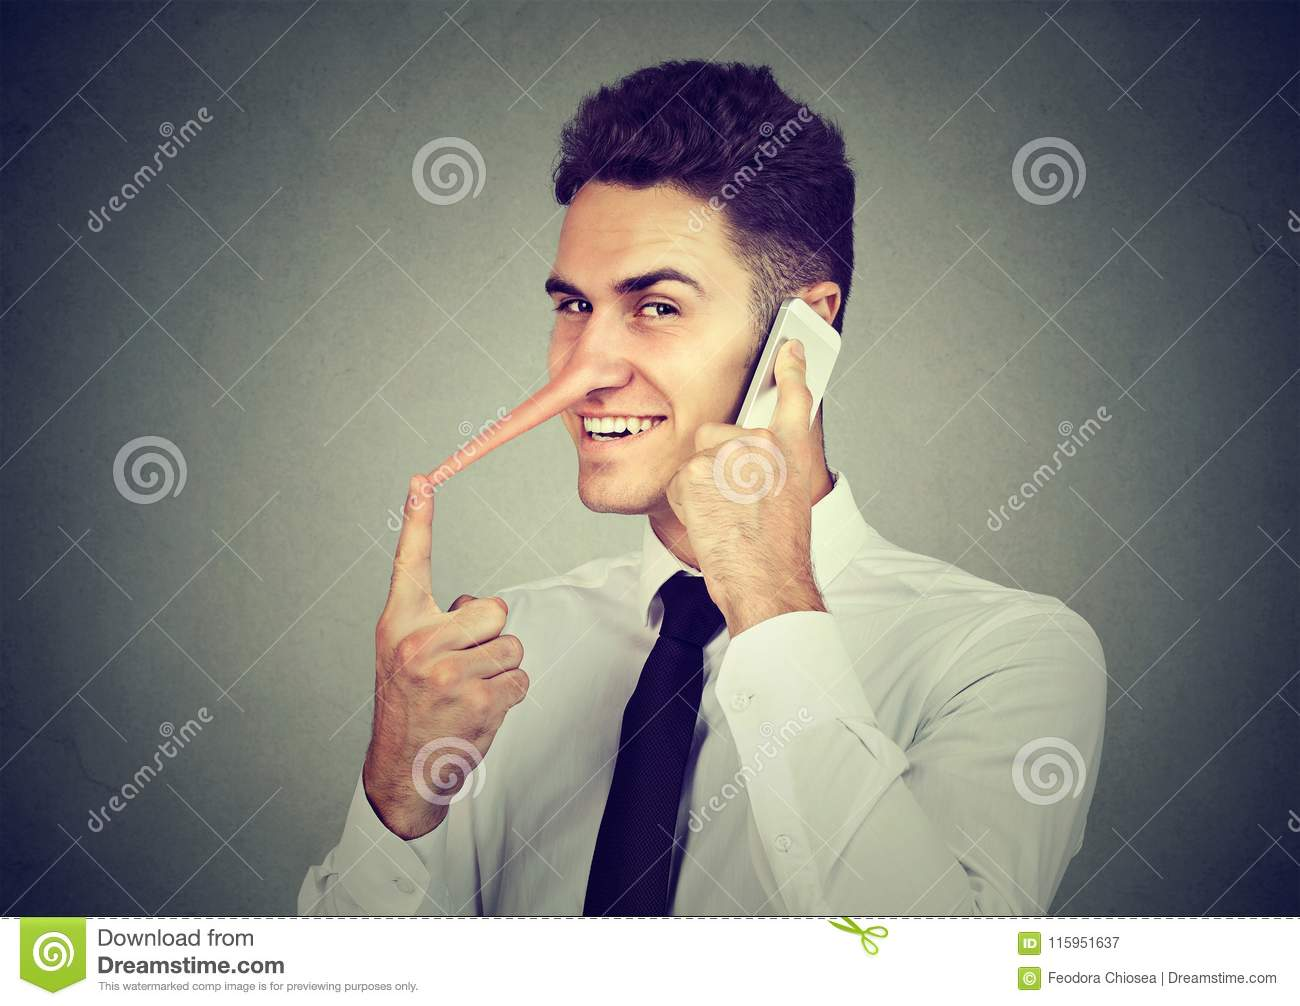 Sly young man with long nose talking on mobile phone on gray wall background. Liar concept.